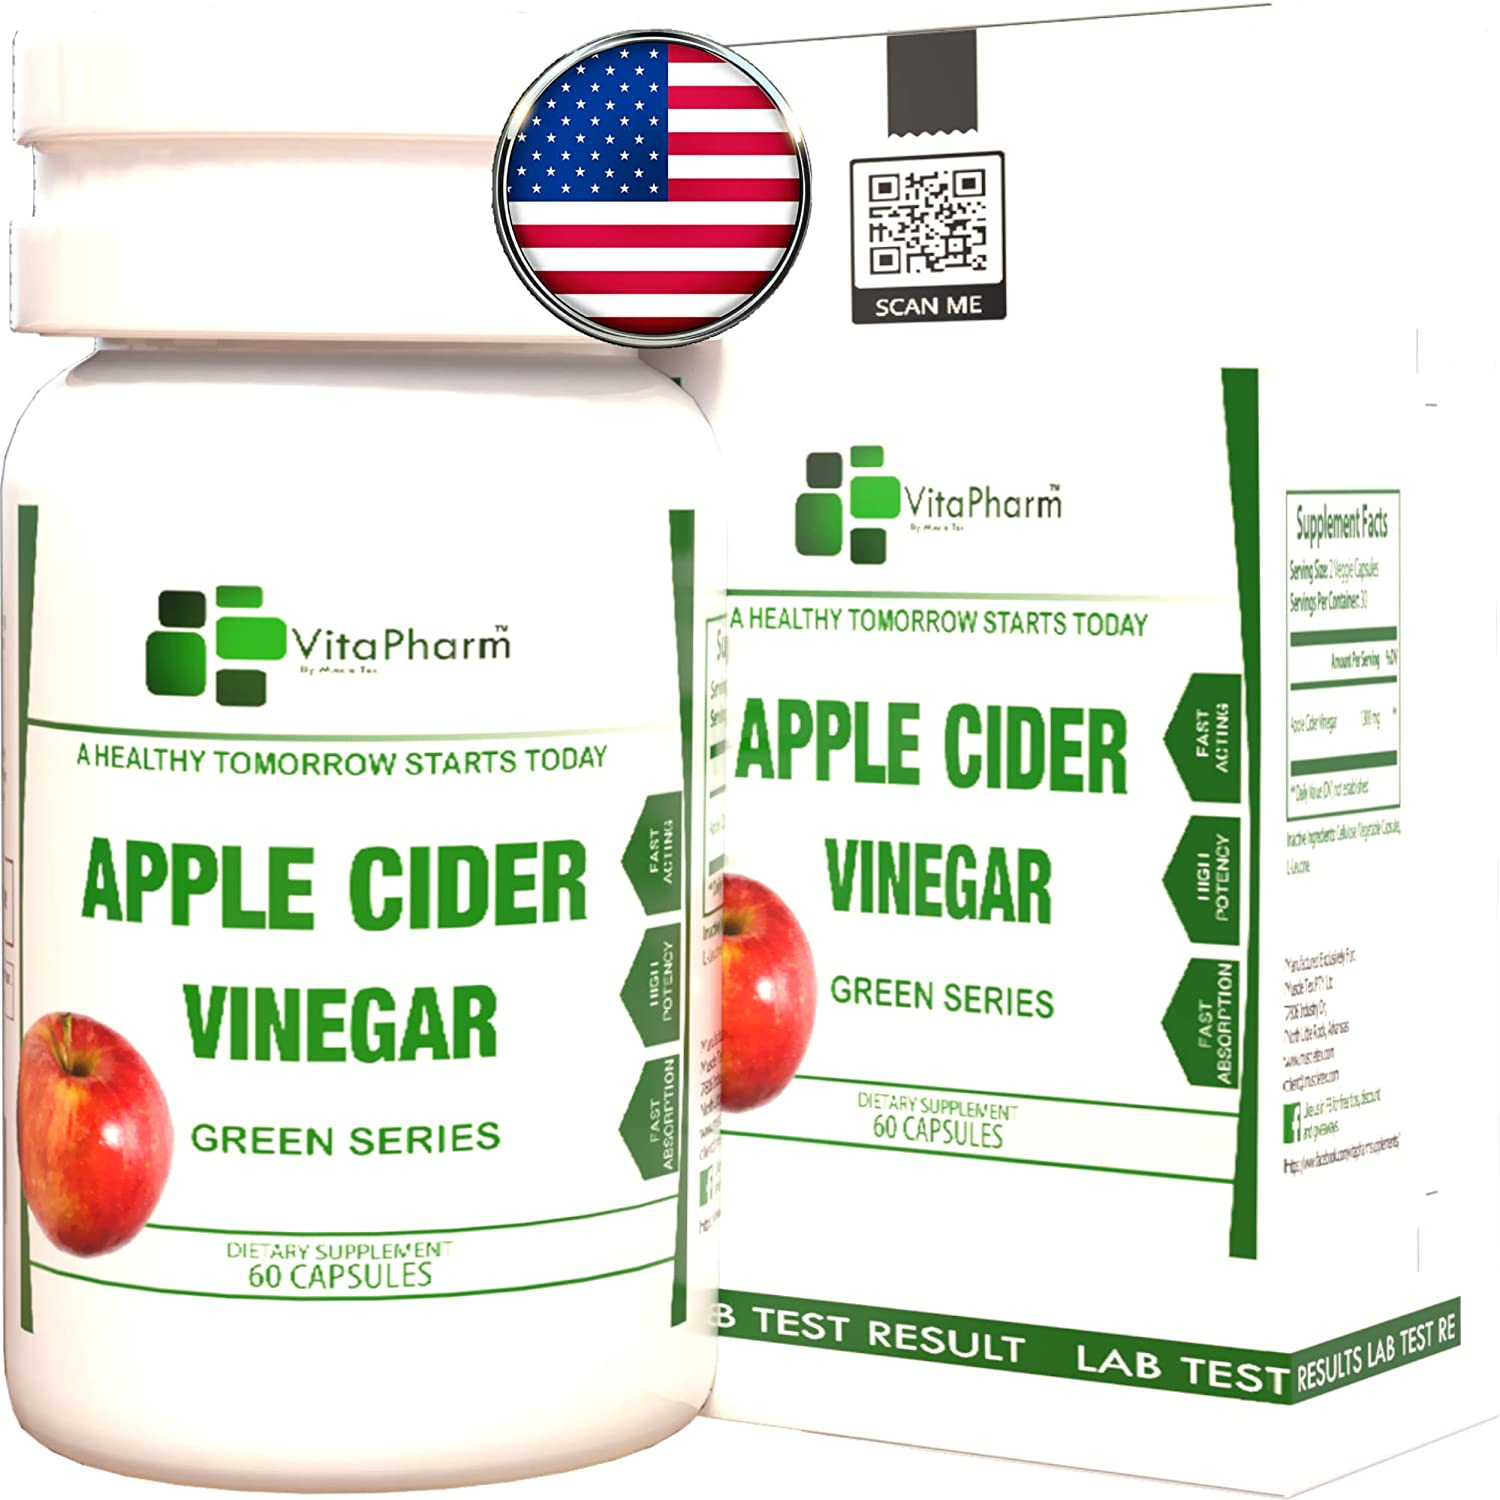 Apple Cider Vinegar Pills by VitaPharm Nutrition | 100% Natural Raw Capsules for Fast Weight Loss, Natural Detox Gut Cleanse & Healthy Digestion. Appetite Suppressant, Bloating Relief.